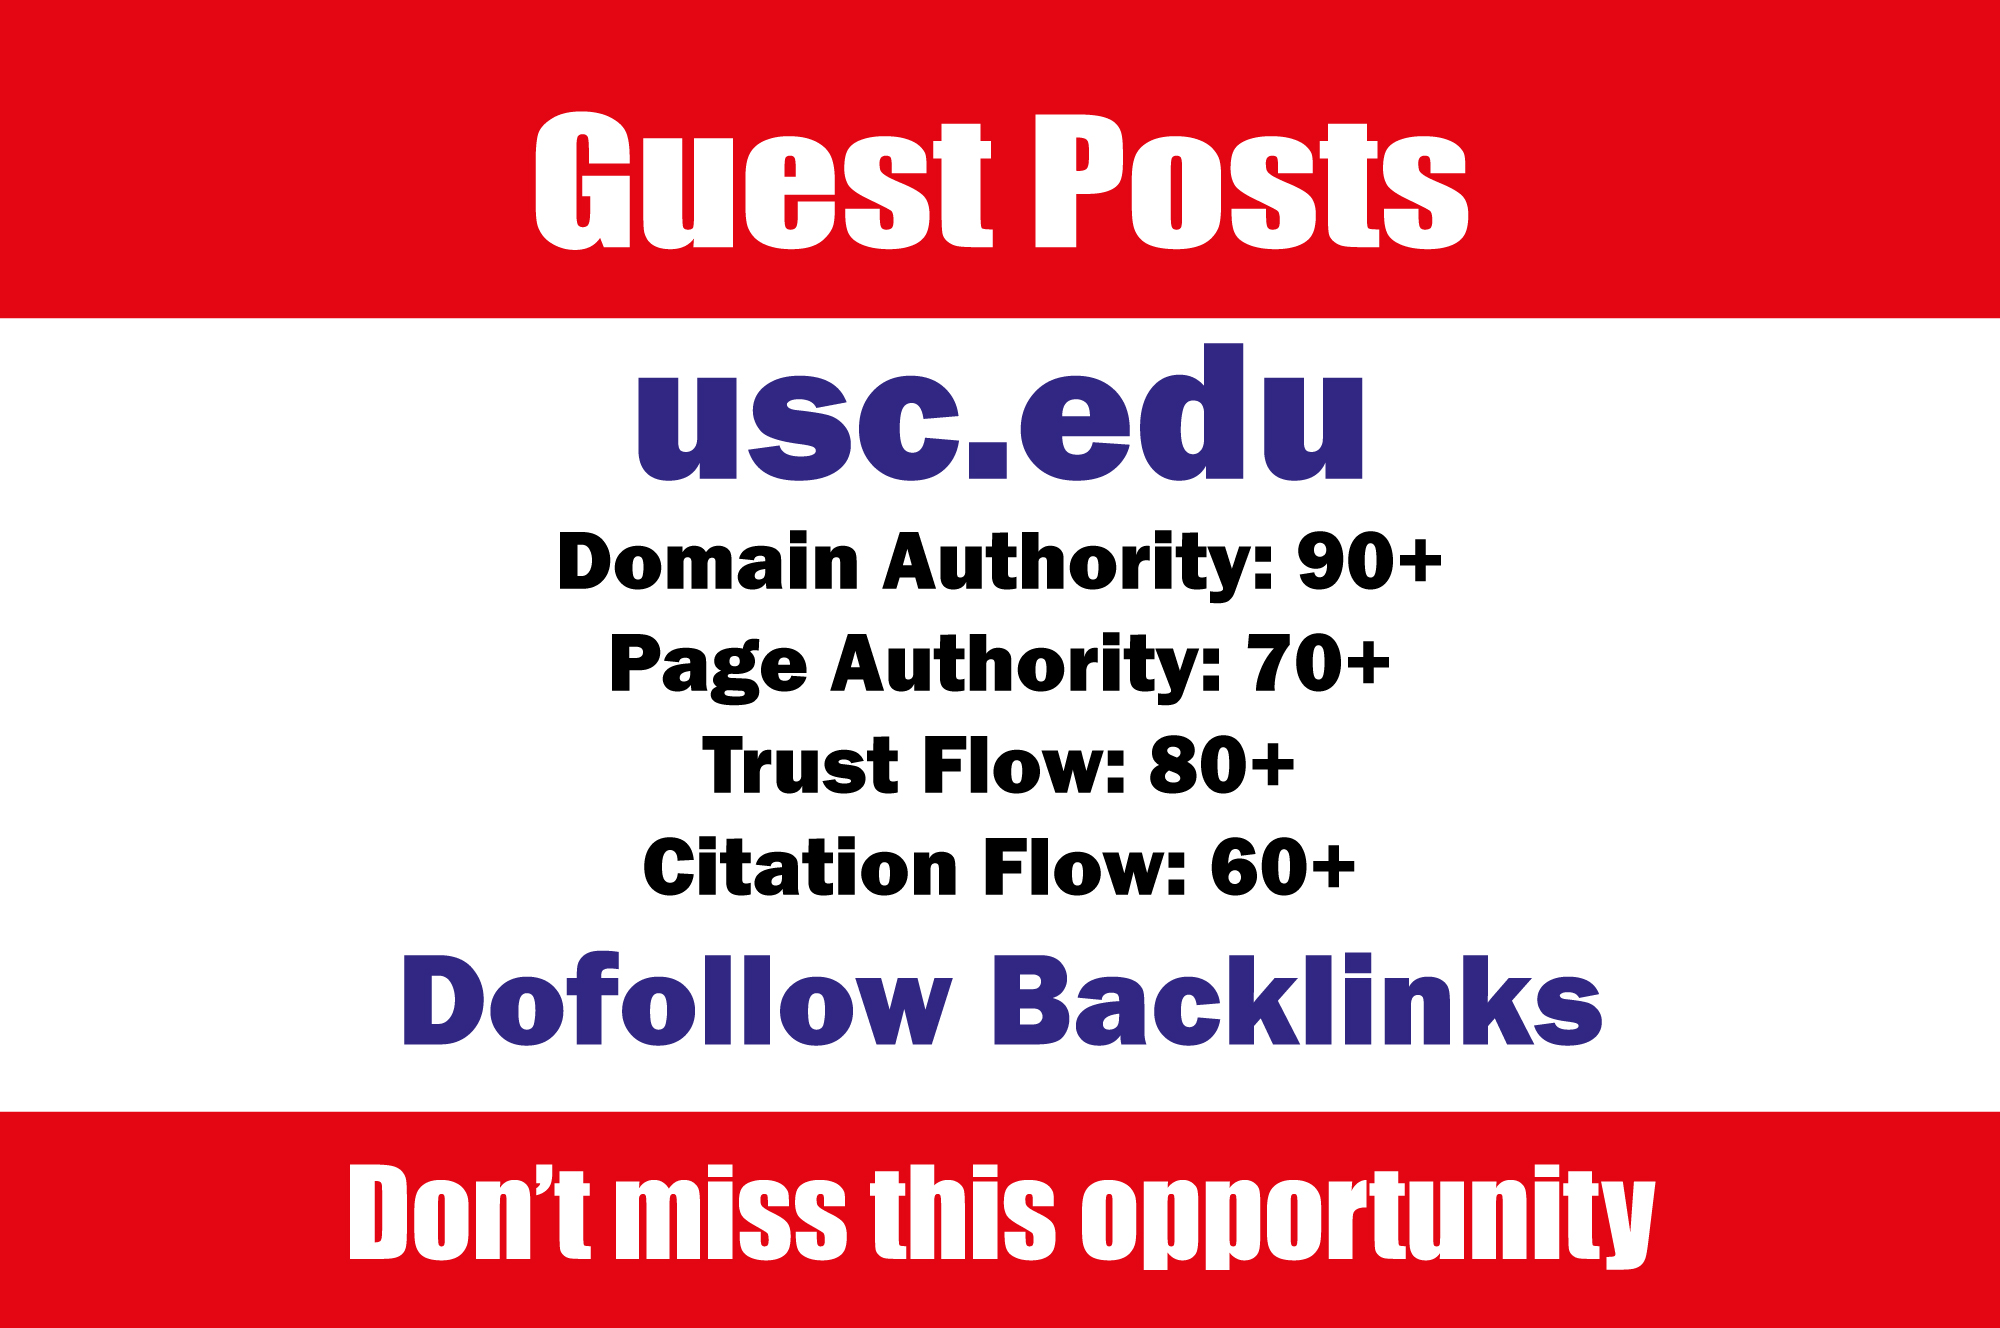 Guest Post On University of Southern California - usc. edu DA91 with do f0llow